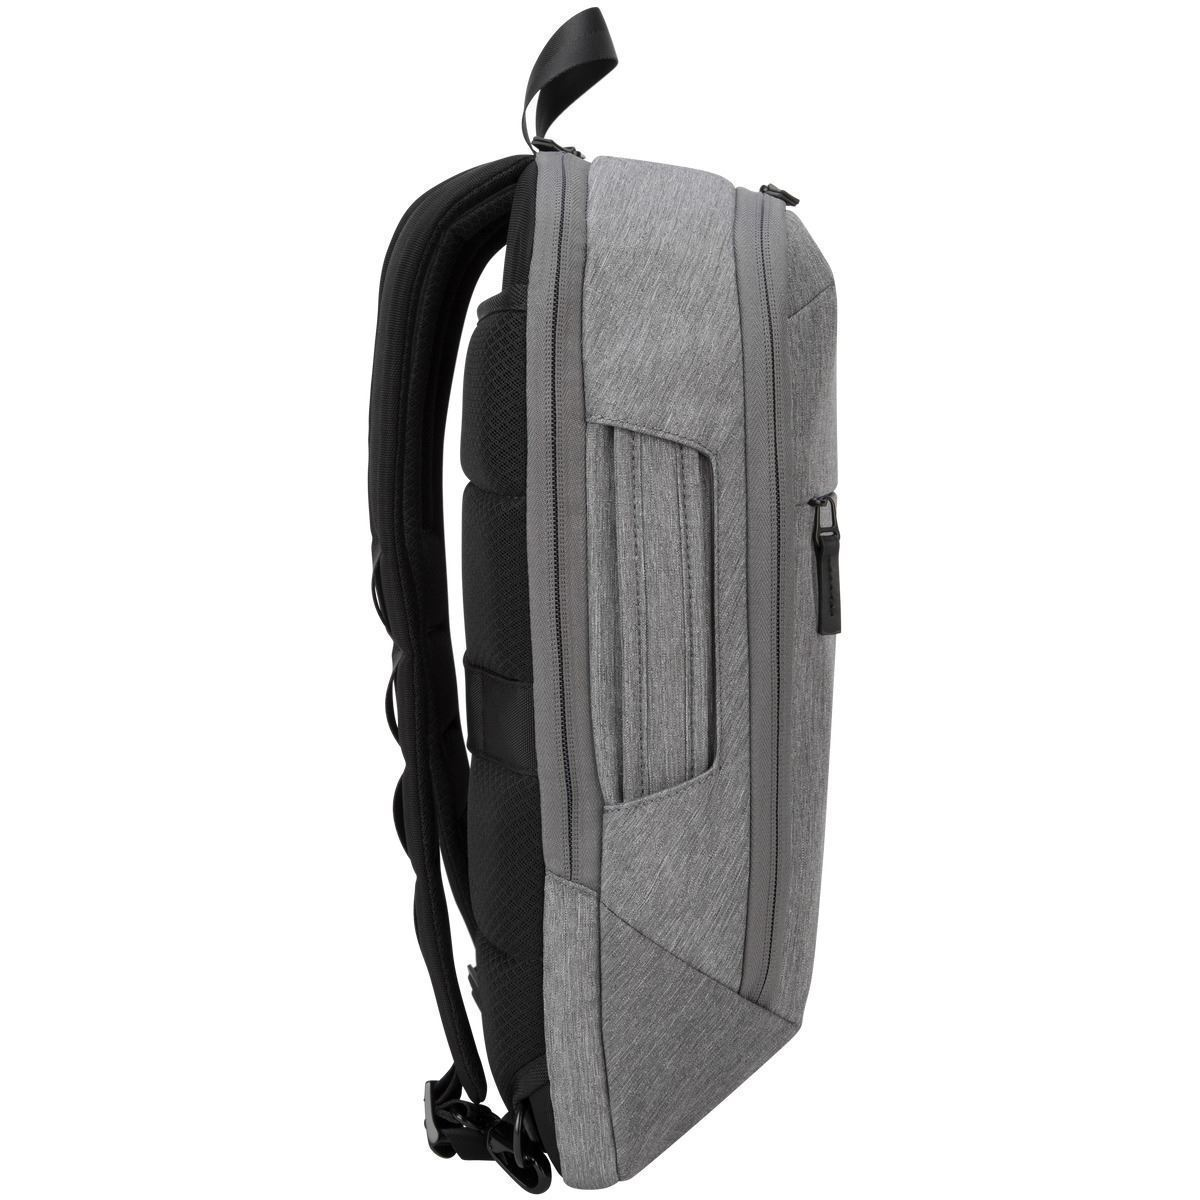 "Targus: CityLite Pro Compact Convertible Backpack 12-15.6"" image"